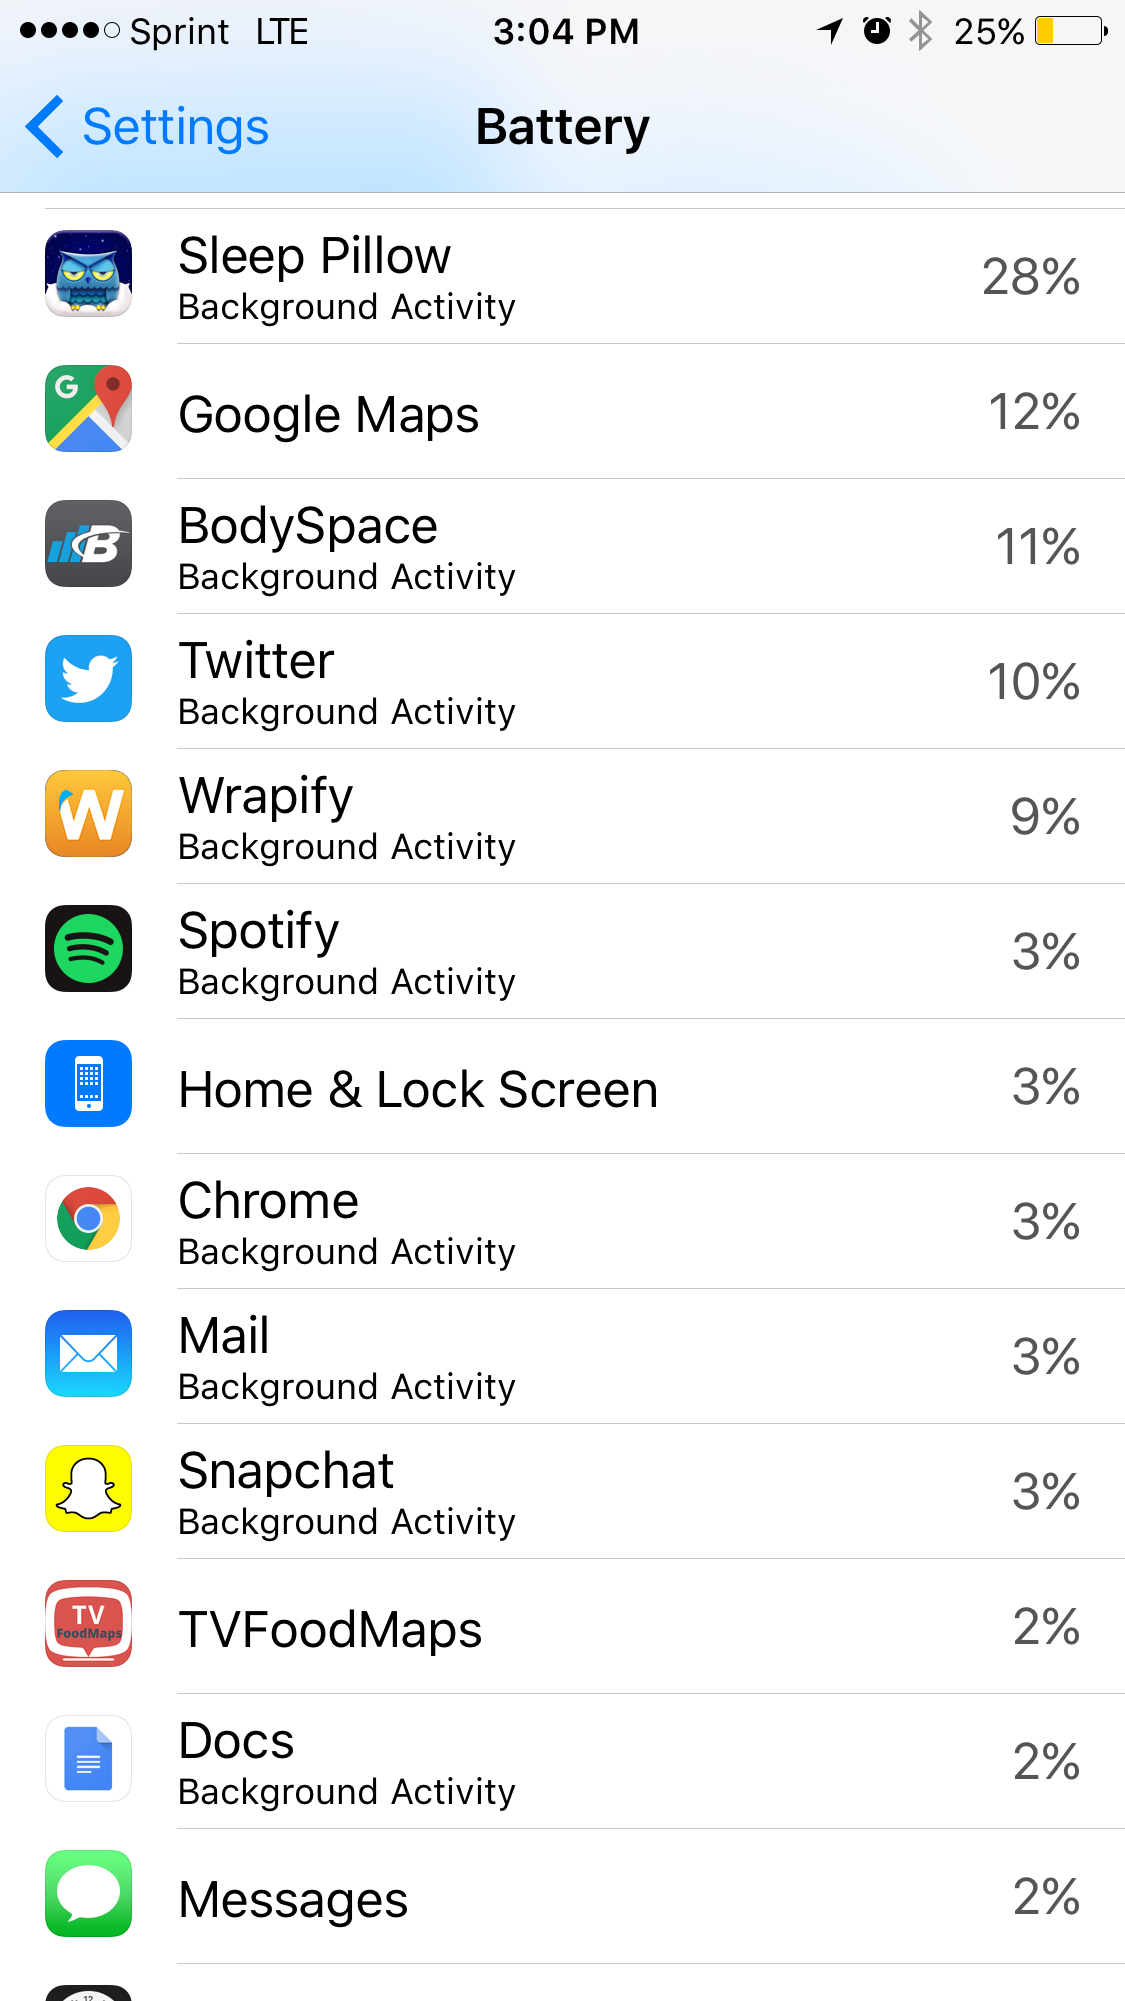 Battery Usage - Past 24 hours